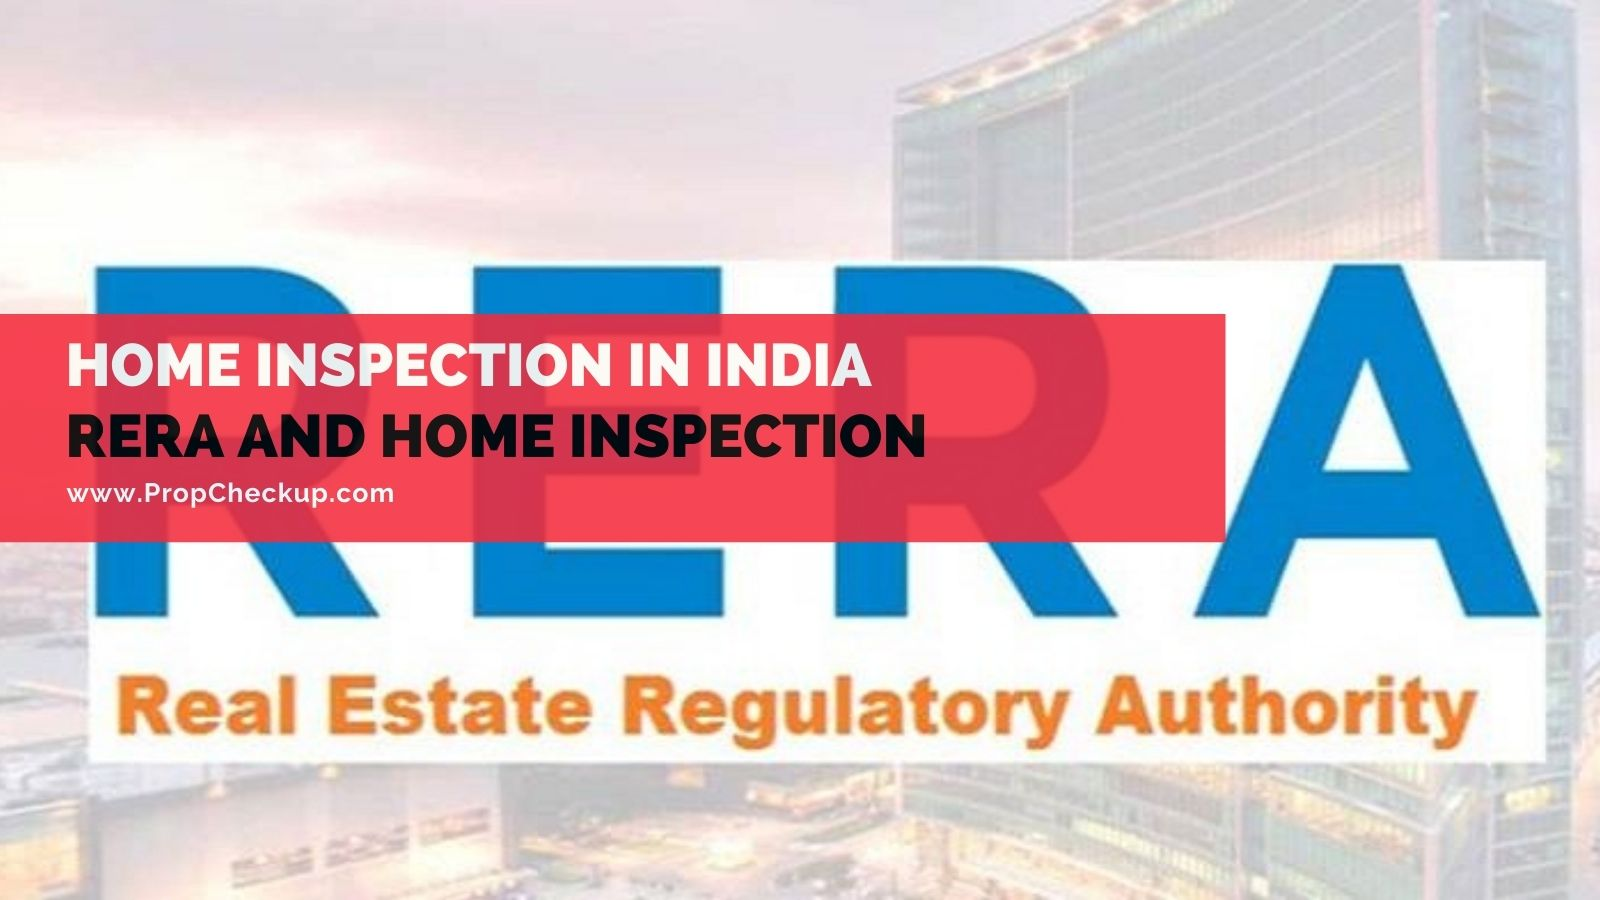 Home Inspection and RERA in India